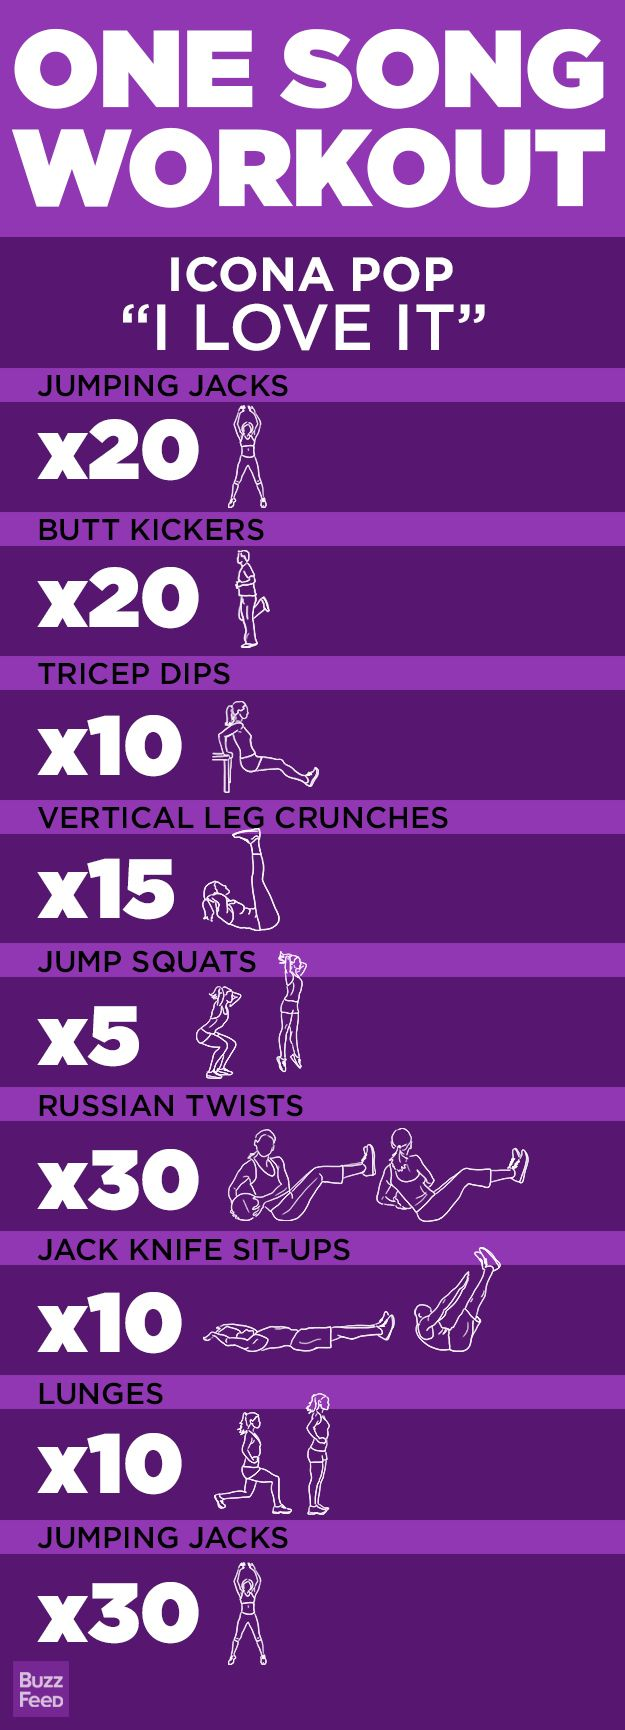 Buzzfeed one song workouts